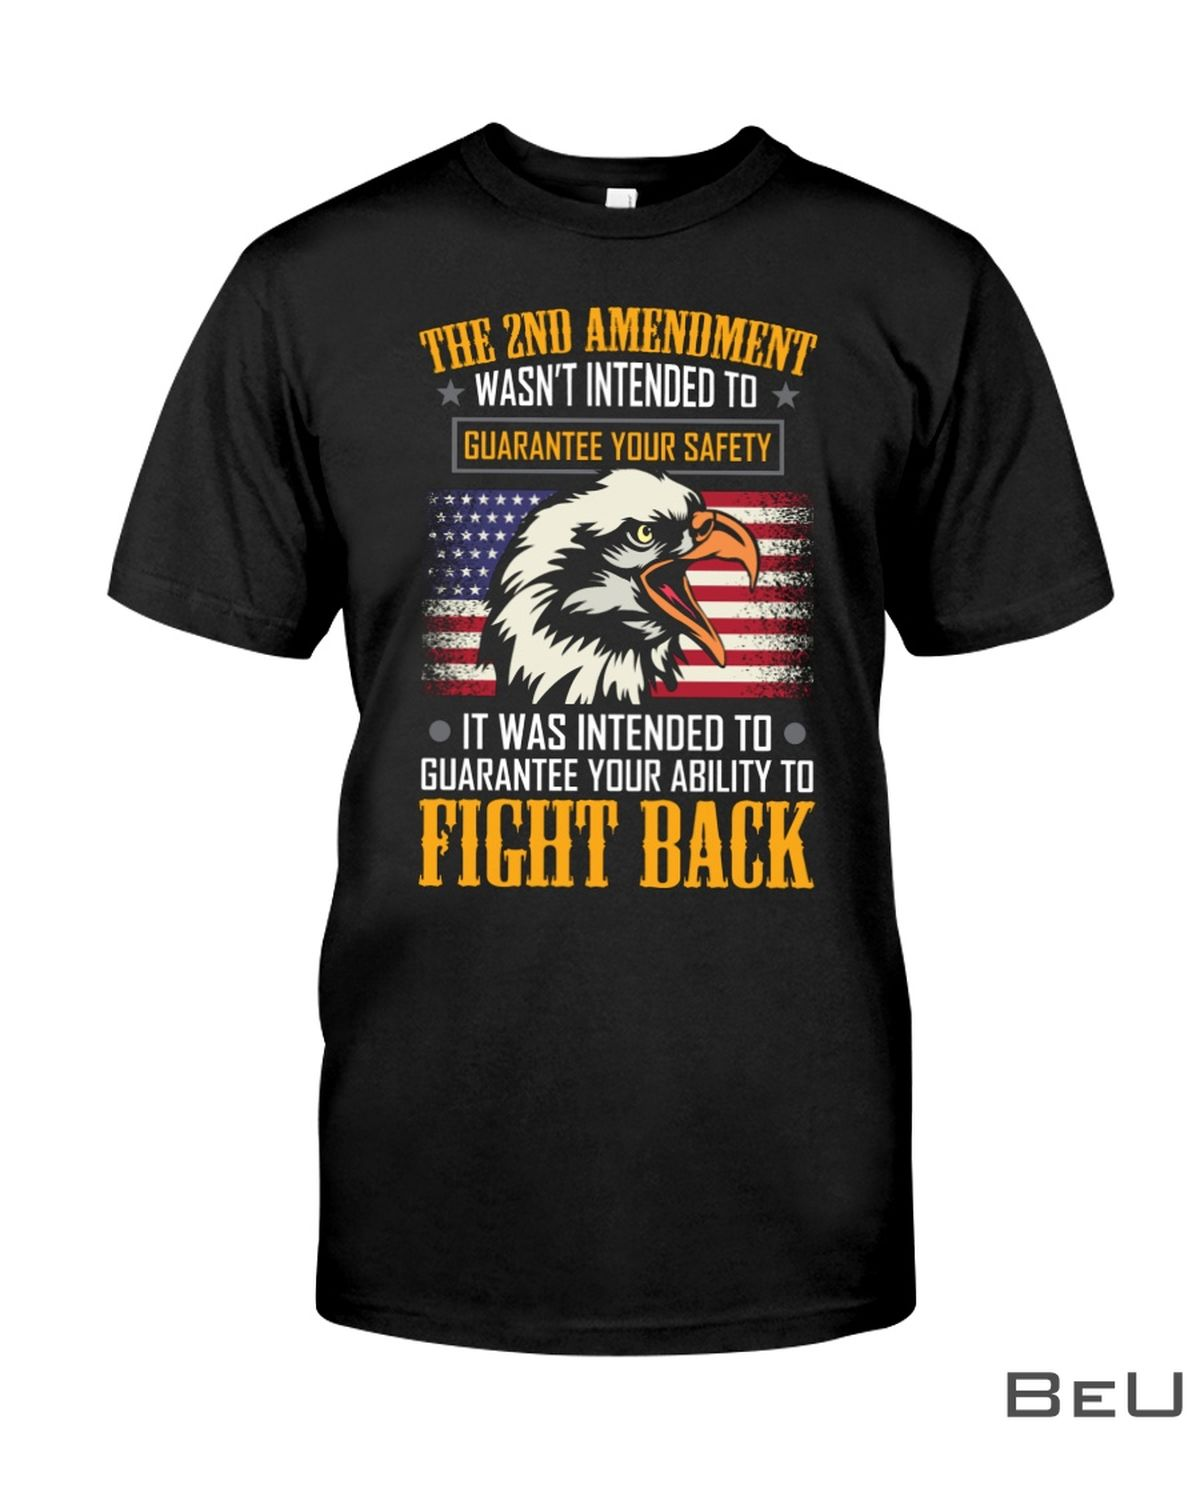 Fight Back The 2nd Amendment Wasn't Intended To Guarantee Your Safety Shirt